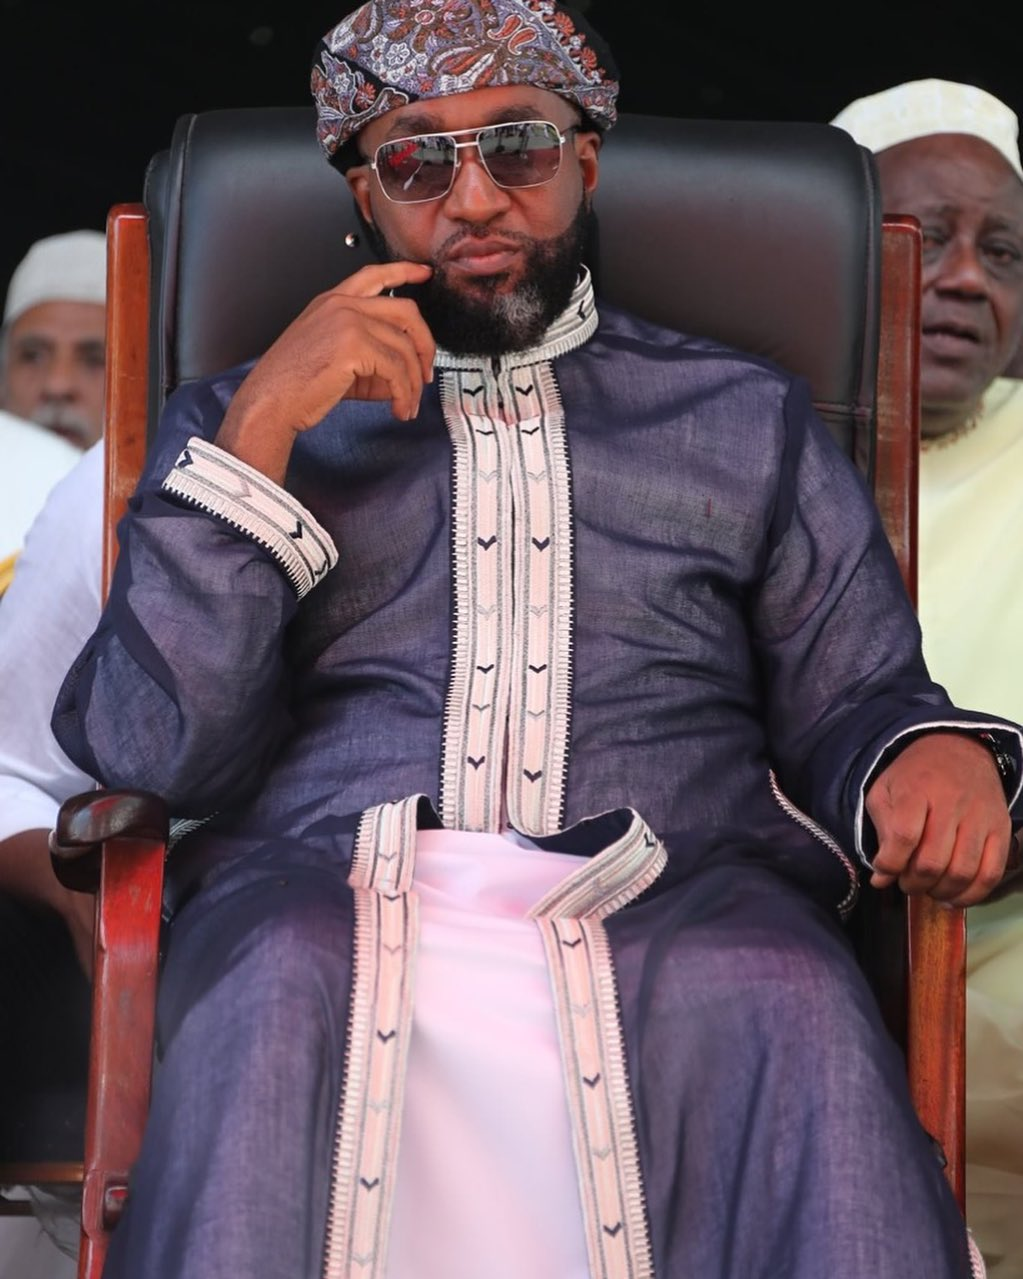 61466889 321194342143990 1743735566971103203 n - Mr steal your girl! Tantalizing photos of Governor Joho